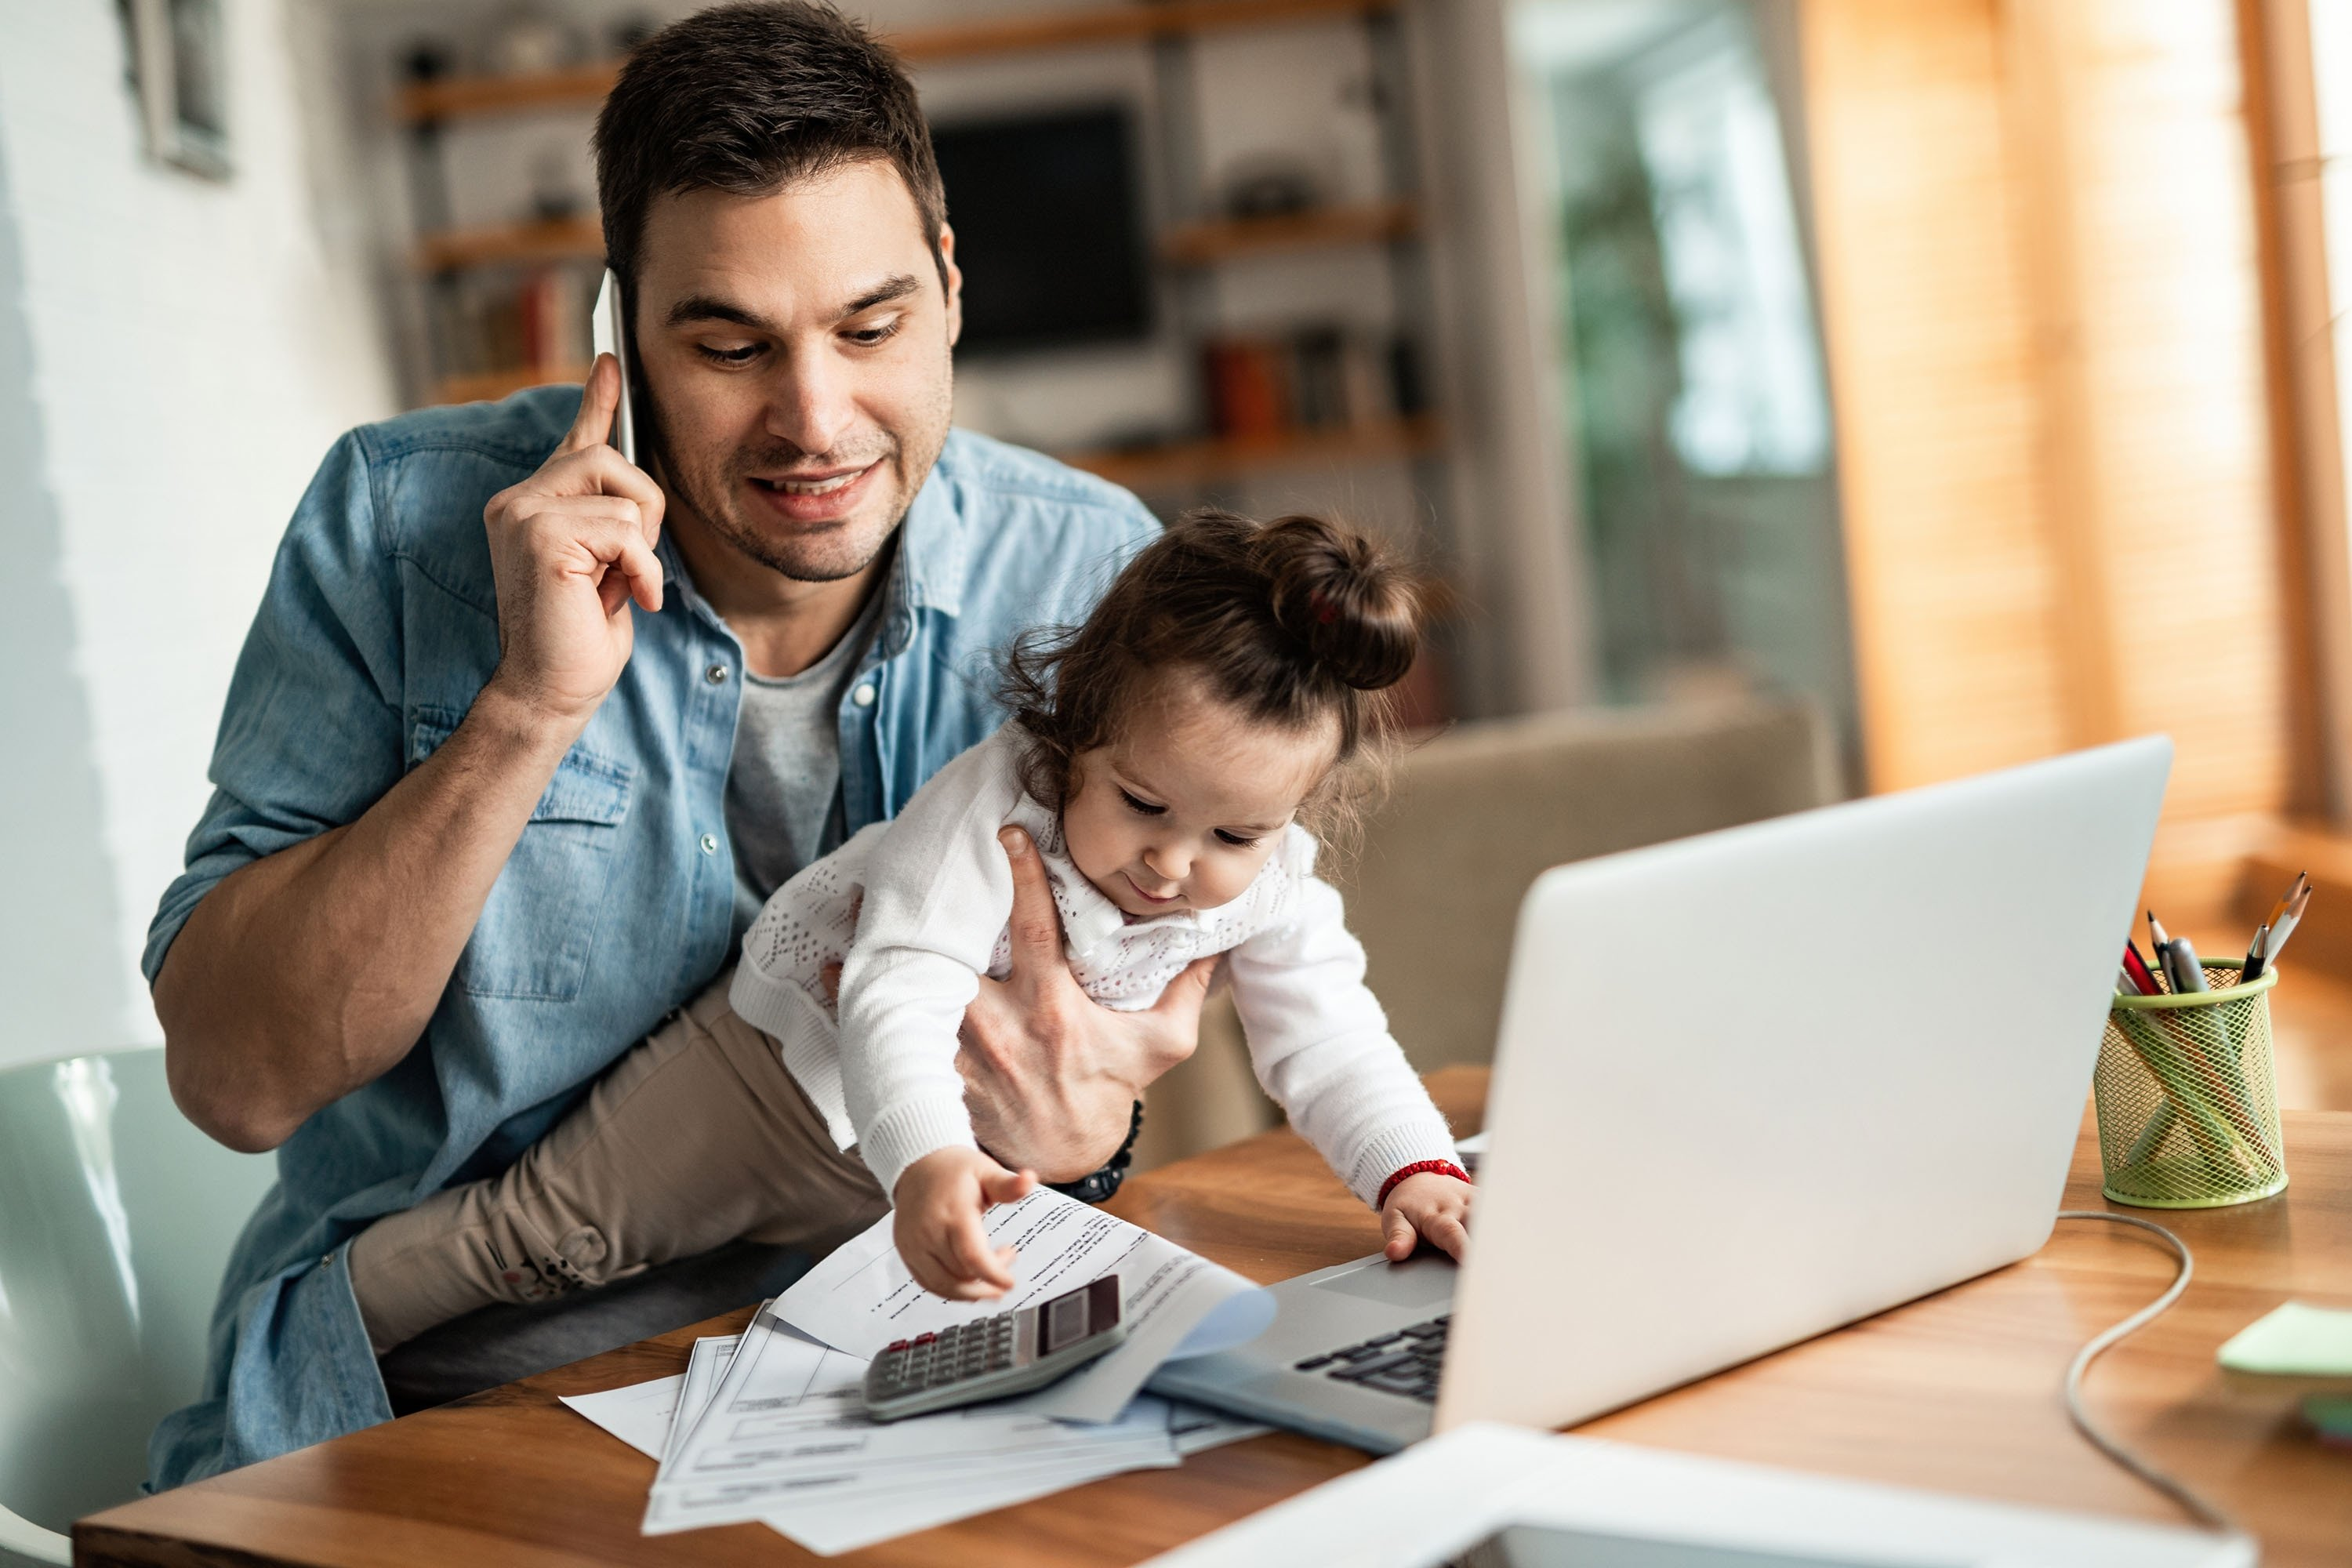 A father talking on the phone during a home office day while babysitting at the same time. (Shutterstock Photo)